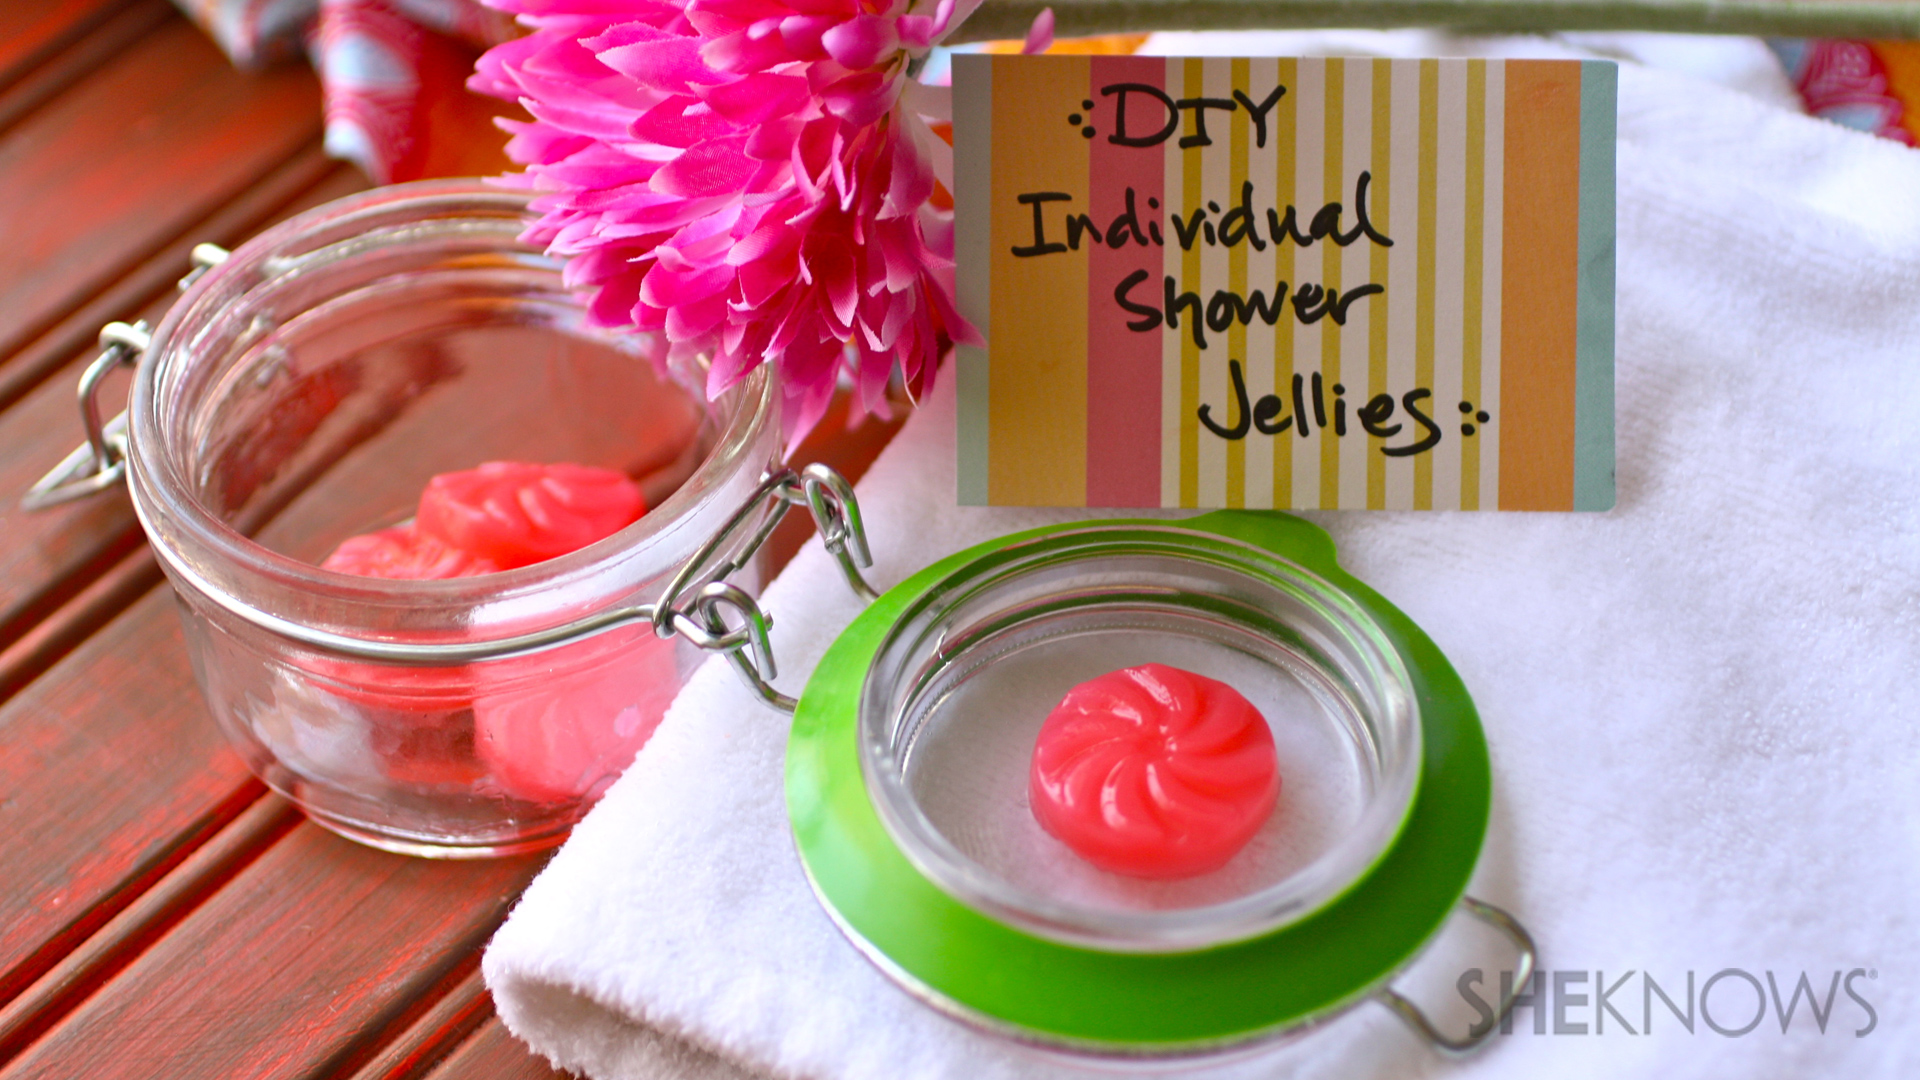 DIY Individual shower jellies